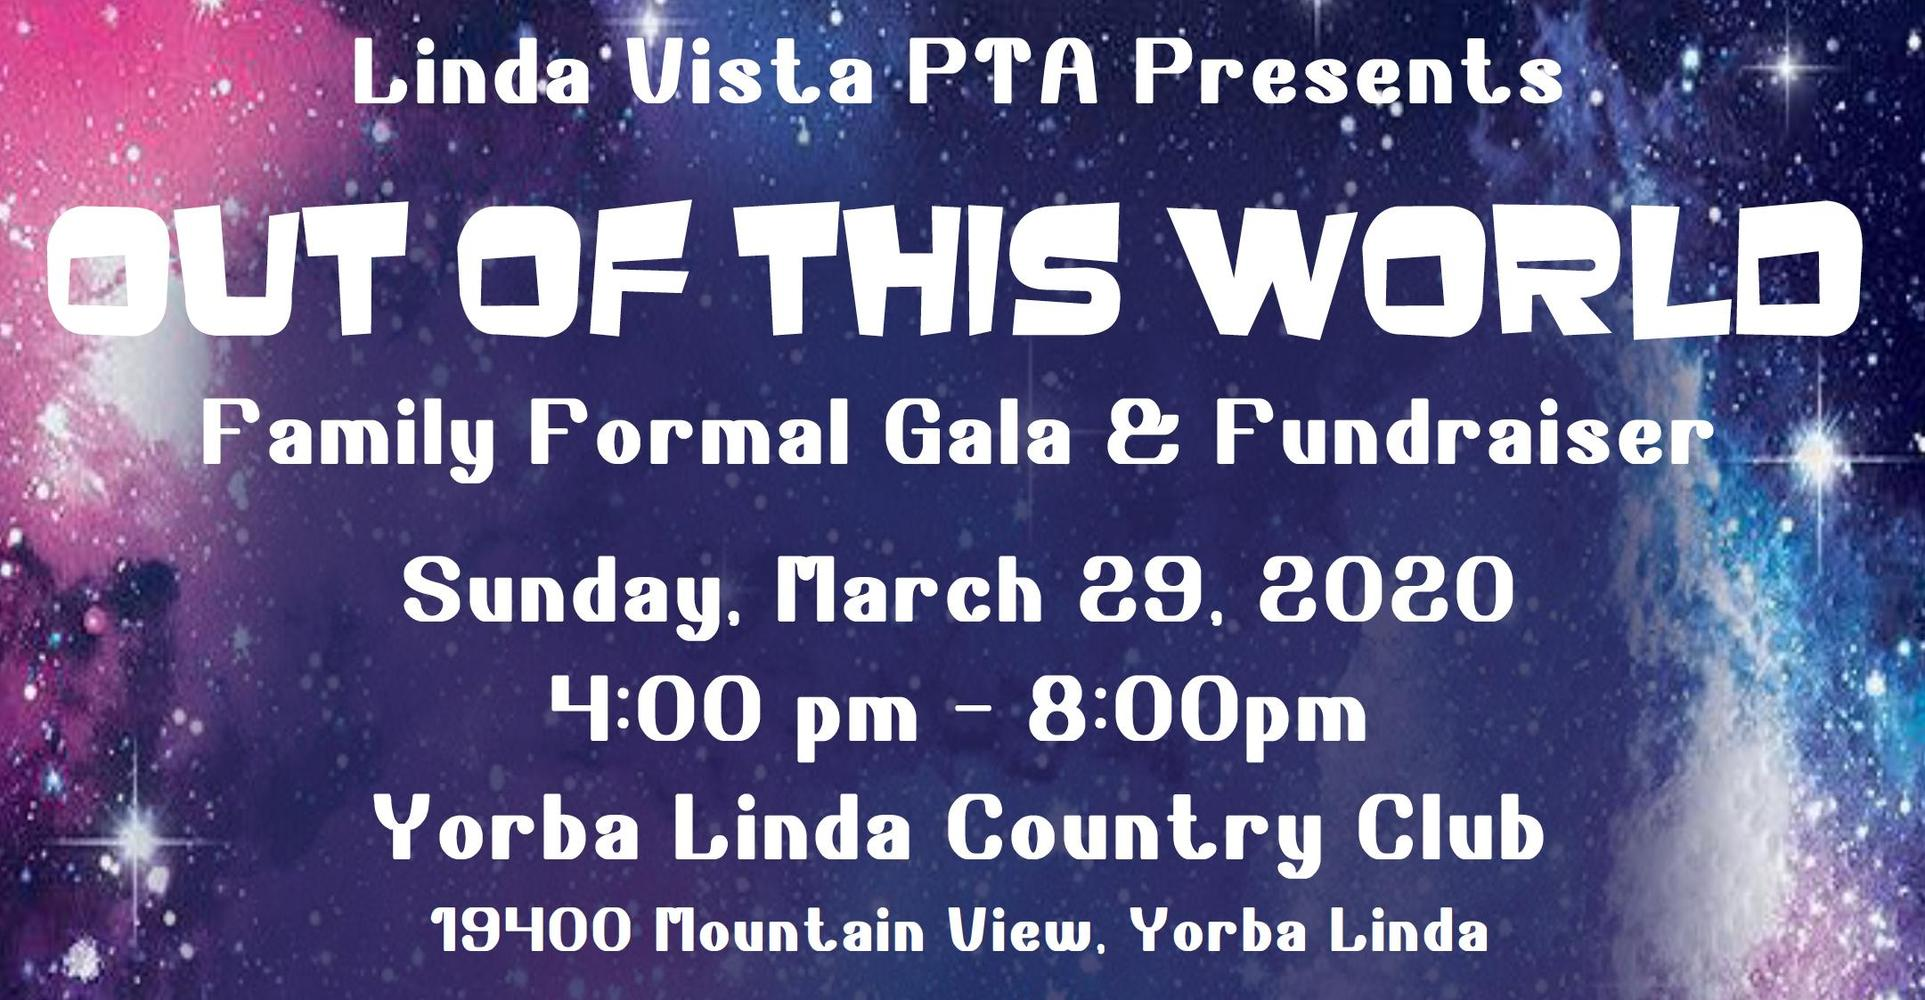 Out of This World - Family Formal Gala & Fundraiser